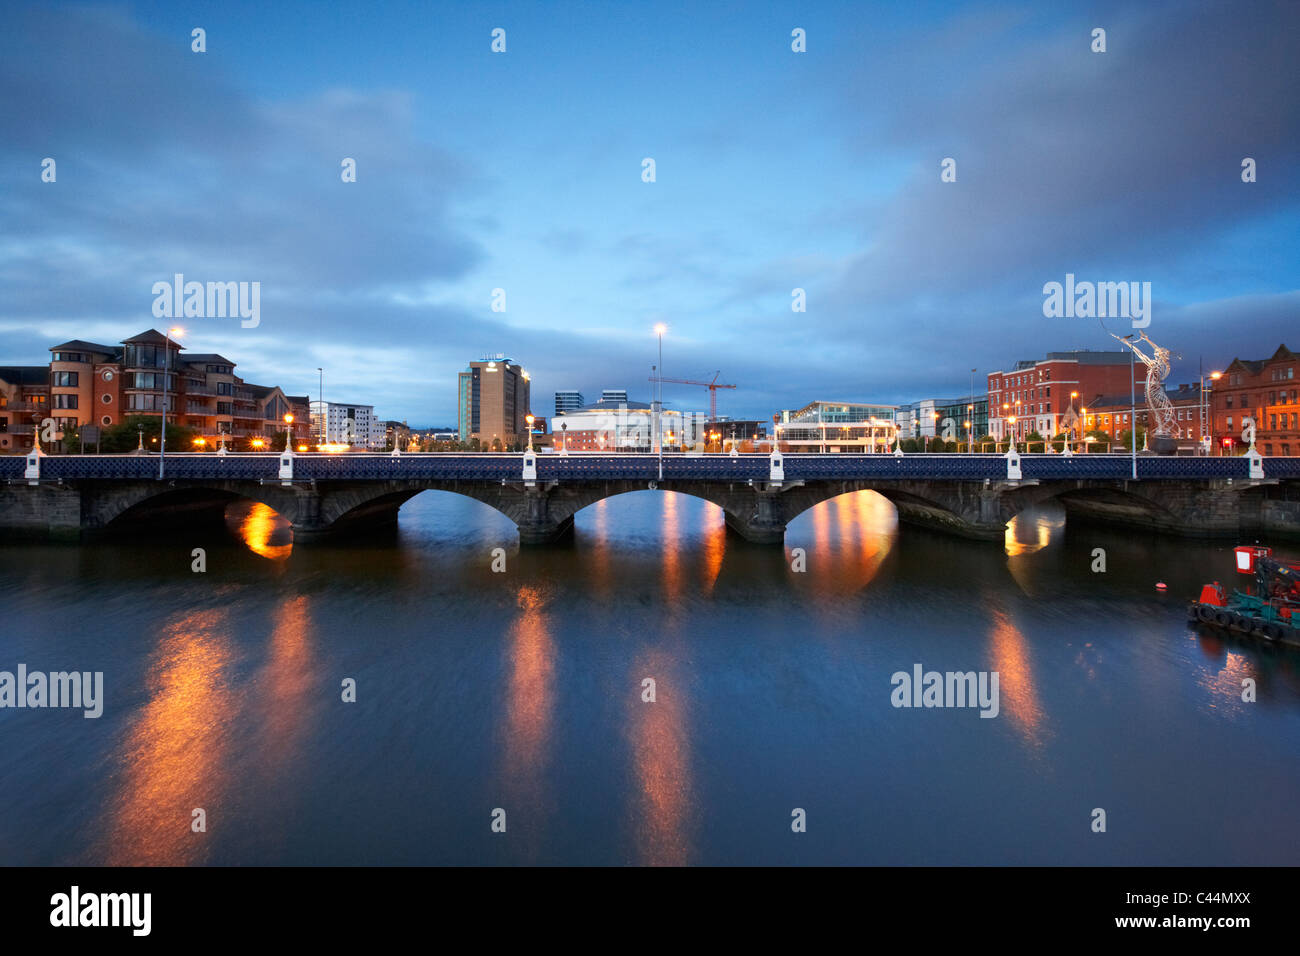 the queens bridge river lagan and laganside waterfront in the early morning blue hour in Belfast Northern Ireland - Stock Image